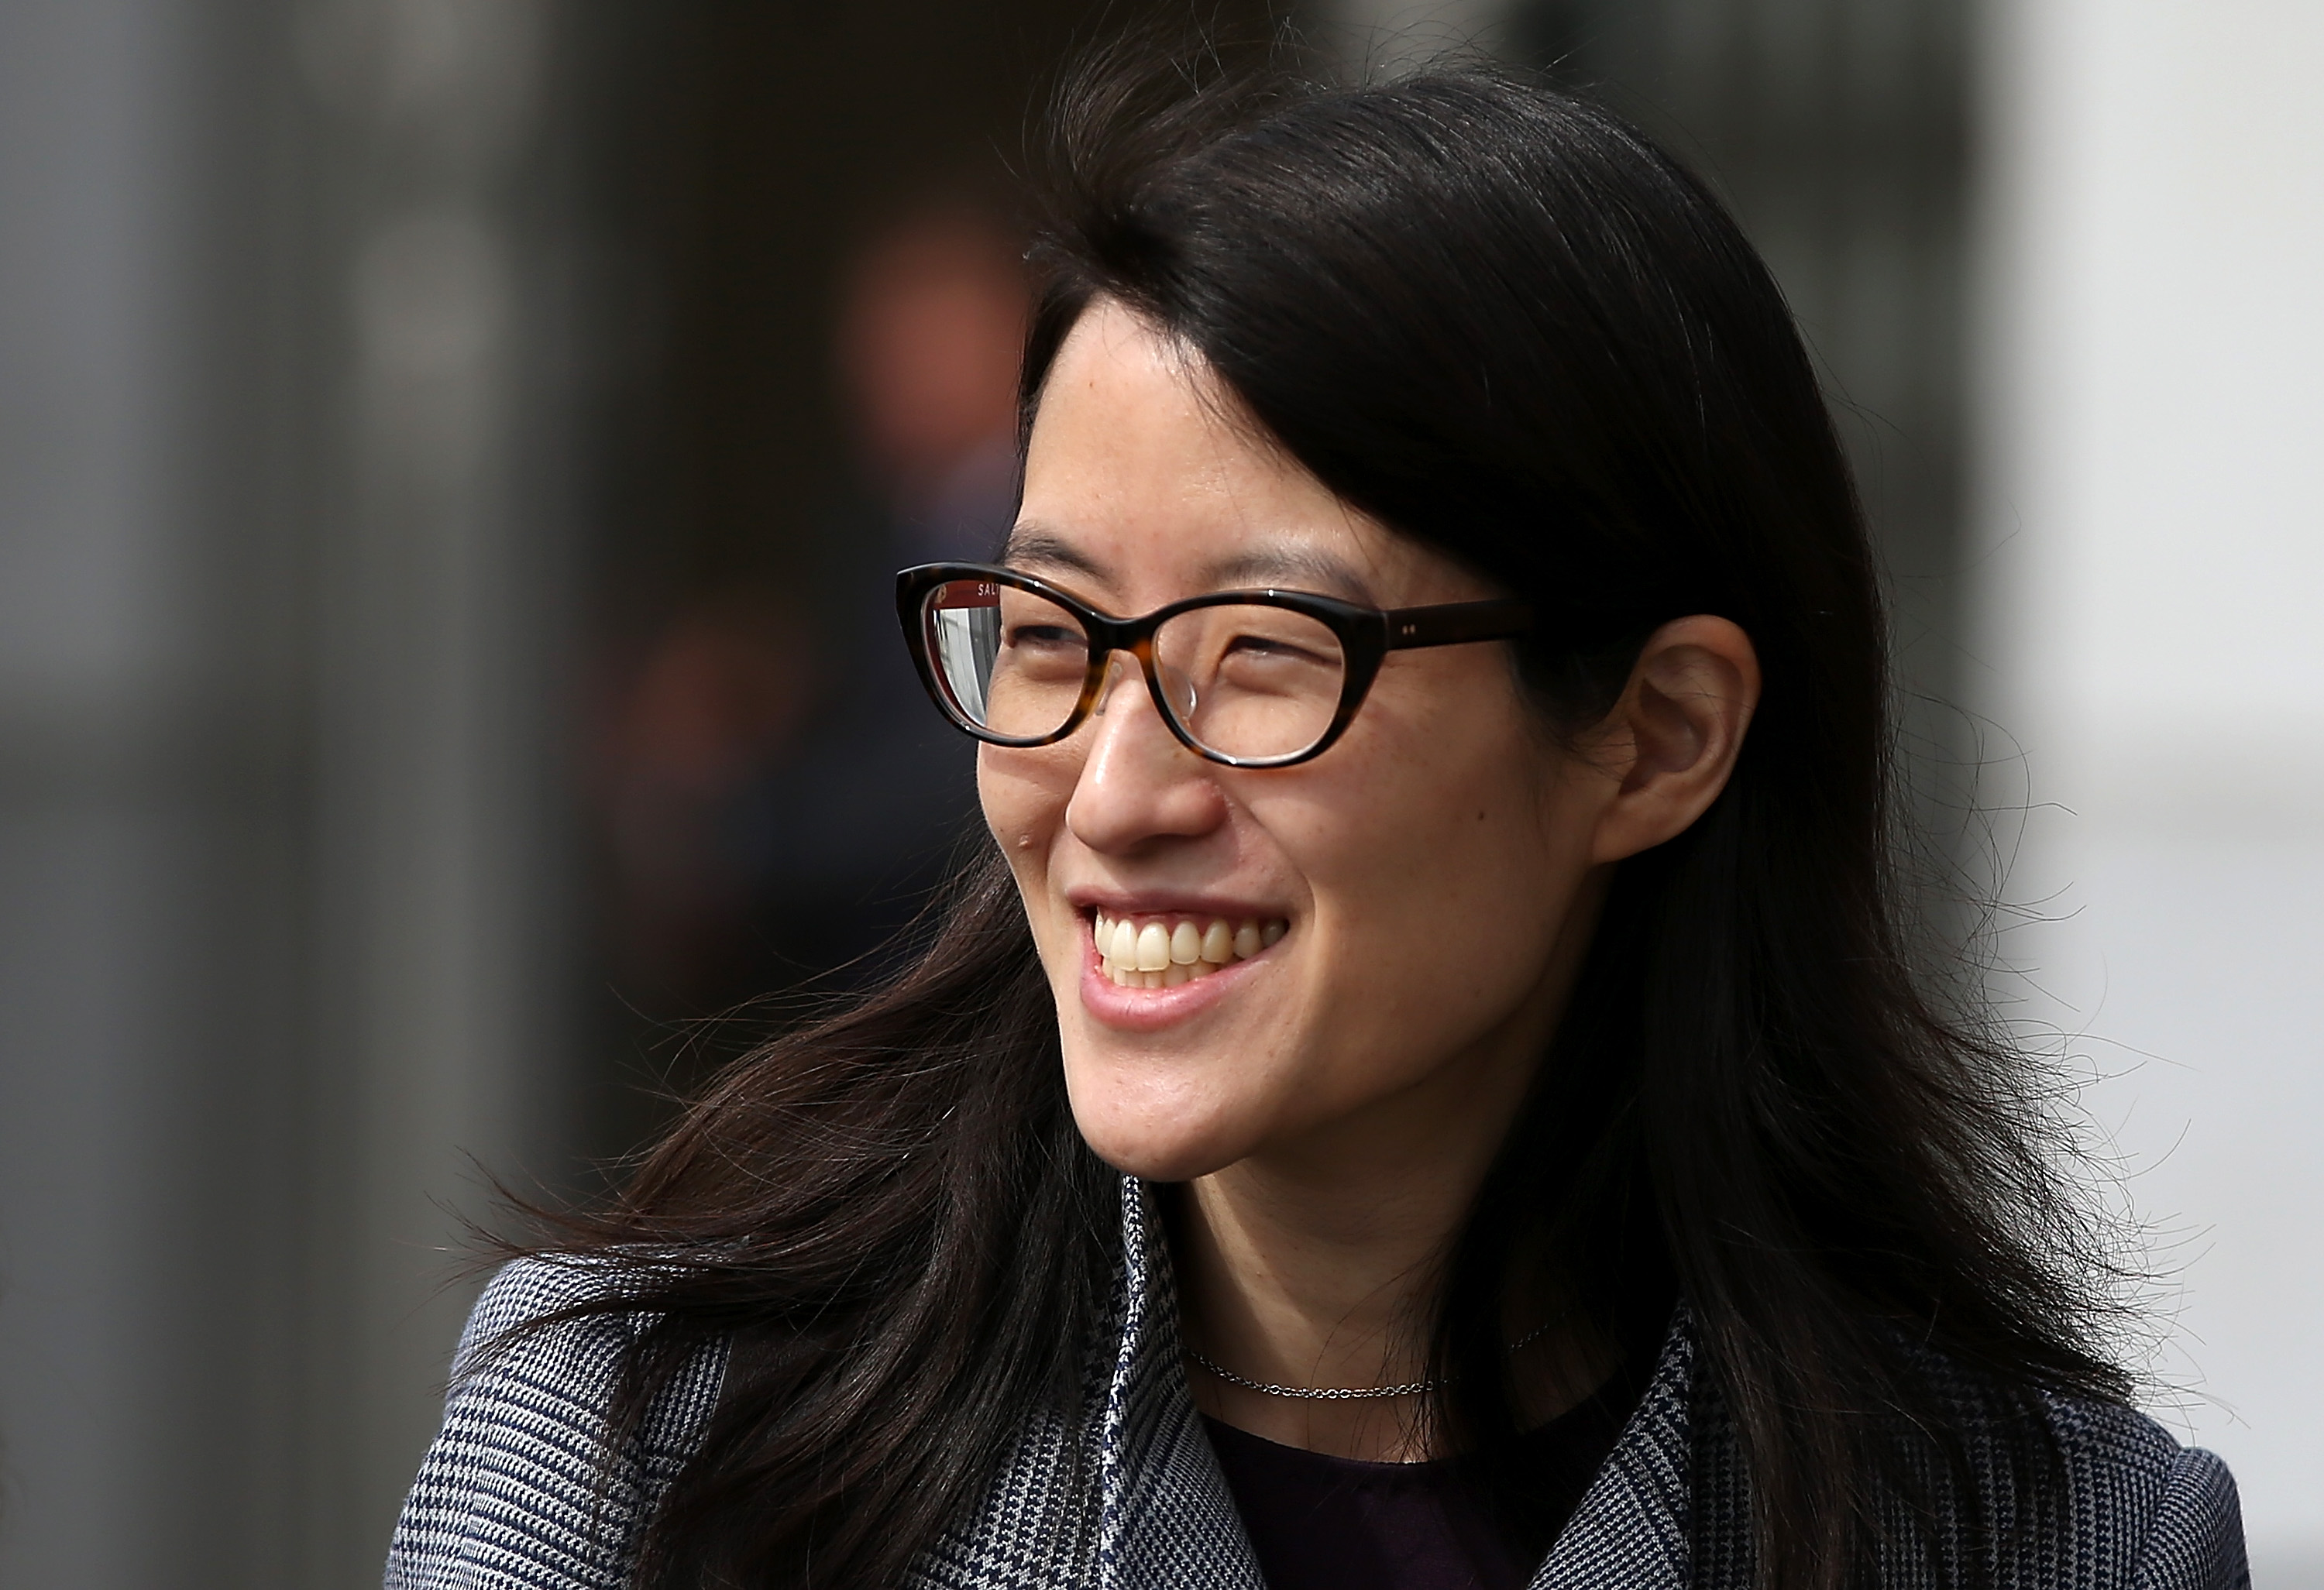 Ellen Pao leaves the California Superior Court Civic Center Courthouse during a lunch break from her trial on March 10, 2015 in San Francisco, CA.